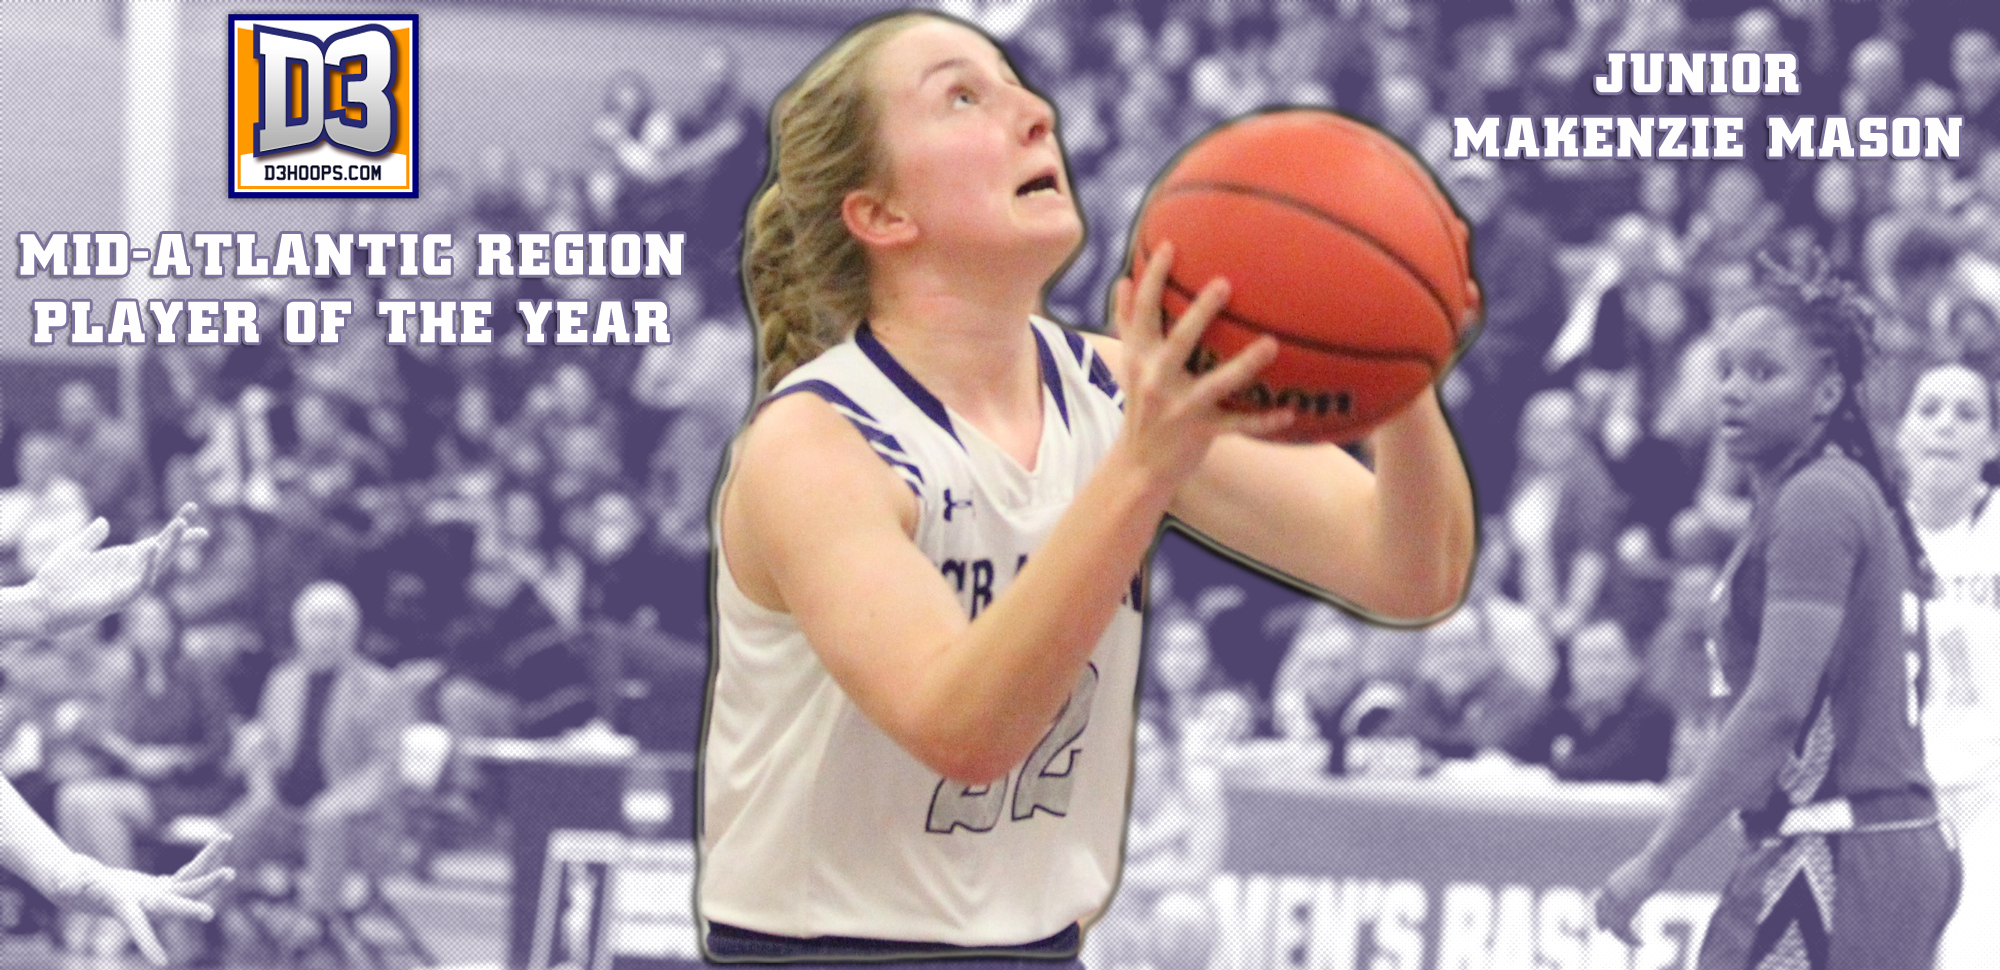 Makenzie Mason Named D3hoops.com Mid-Atlantic Region Player of the Year